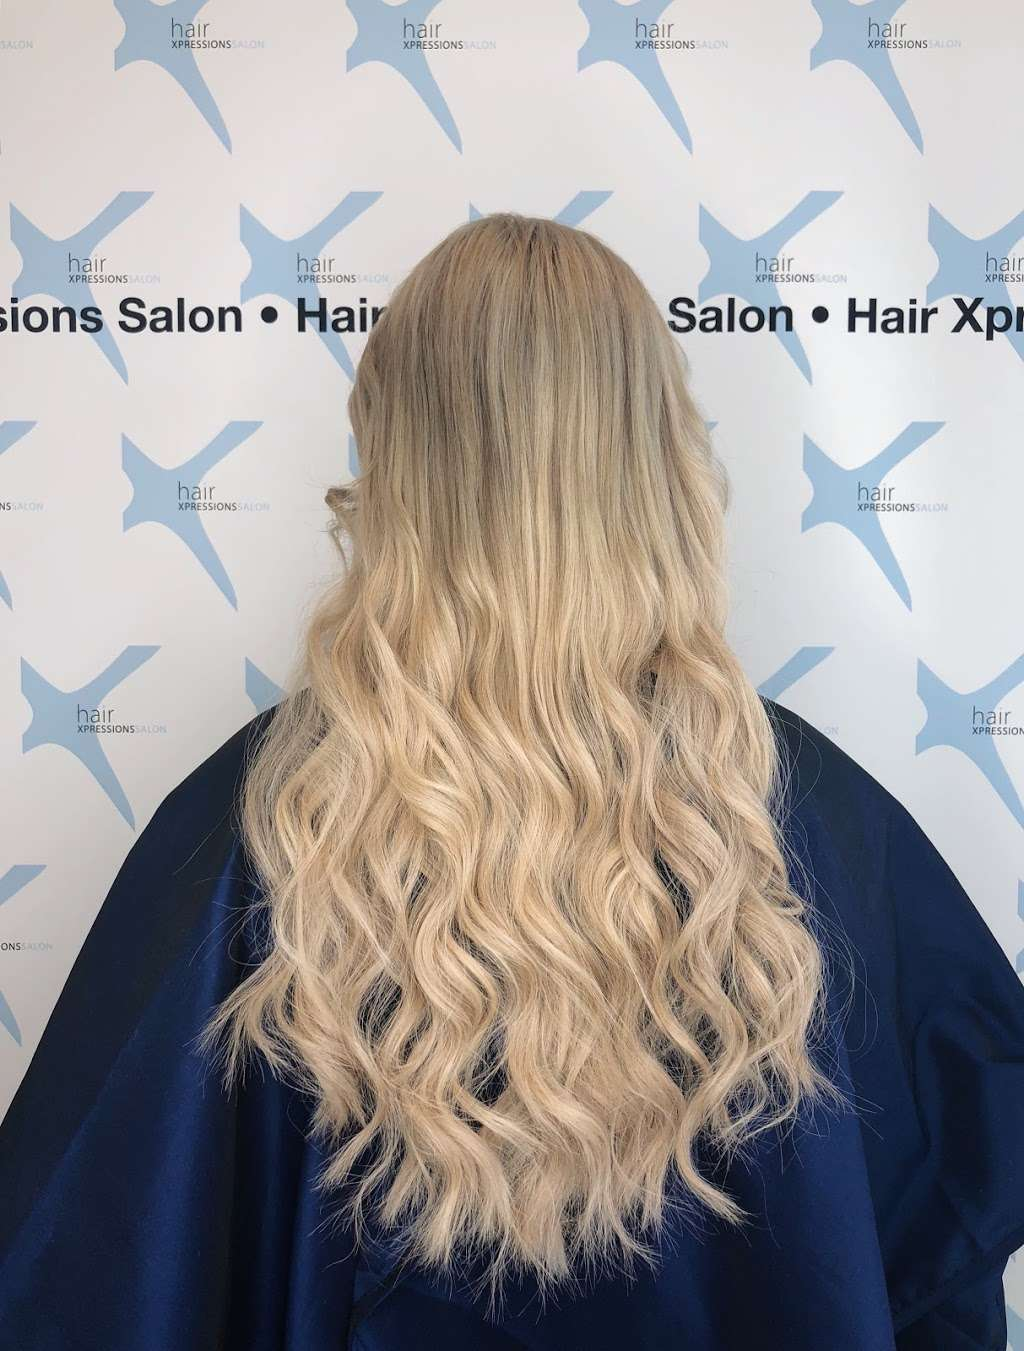 Hair Xpressions Salon - hair care  | Photo 6 of 10 | Address: 8949 Westheimer Rd, Houston, TX 77063, USA | Phone: (713) 550-9266